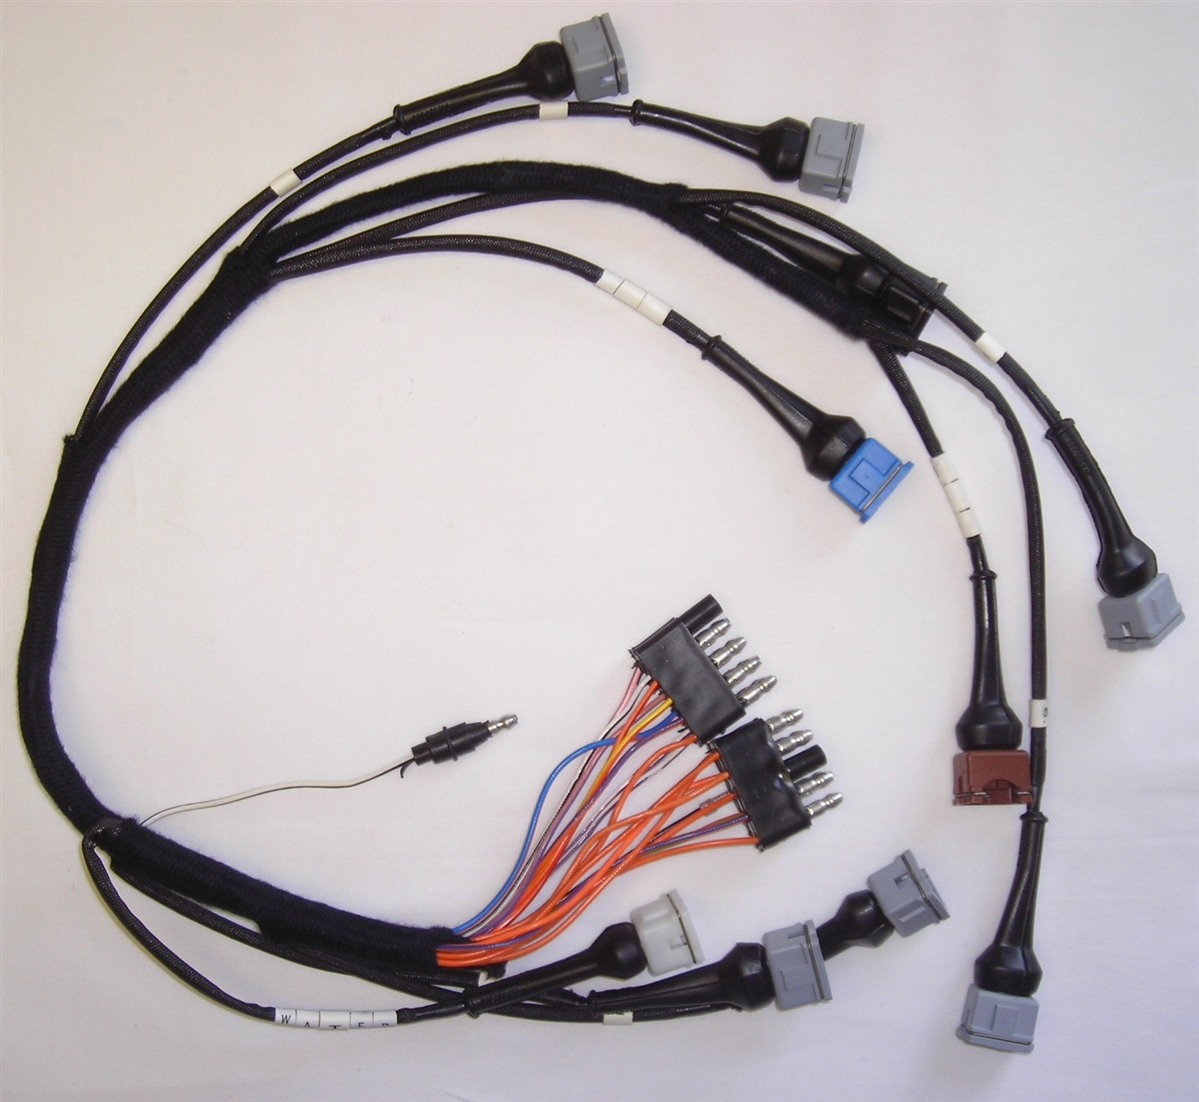 jaguar series 3 xj6 fuel injection harness rh britishwiring com 1997 Jaguar XJ6 jaguar xj6 series 2 wiring harness